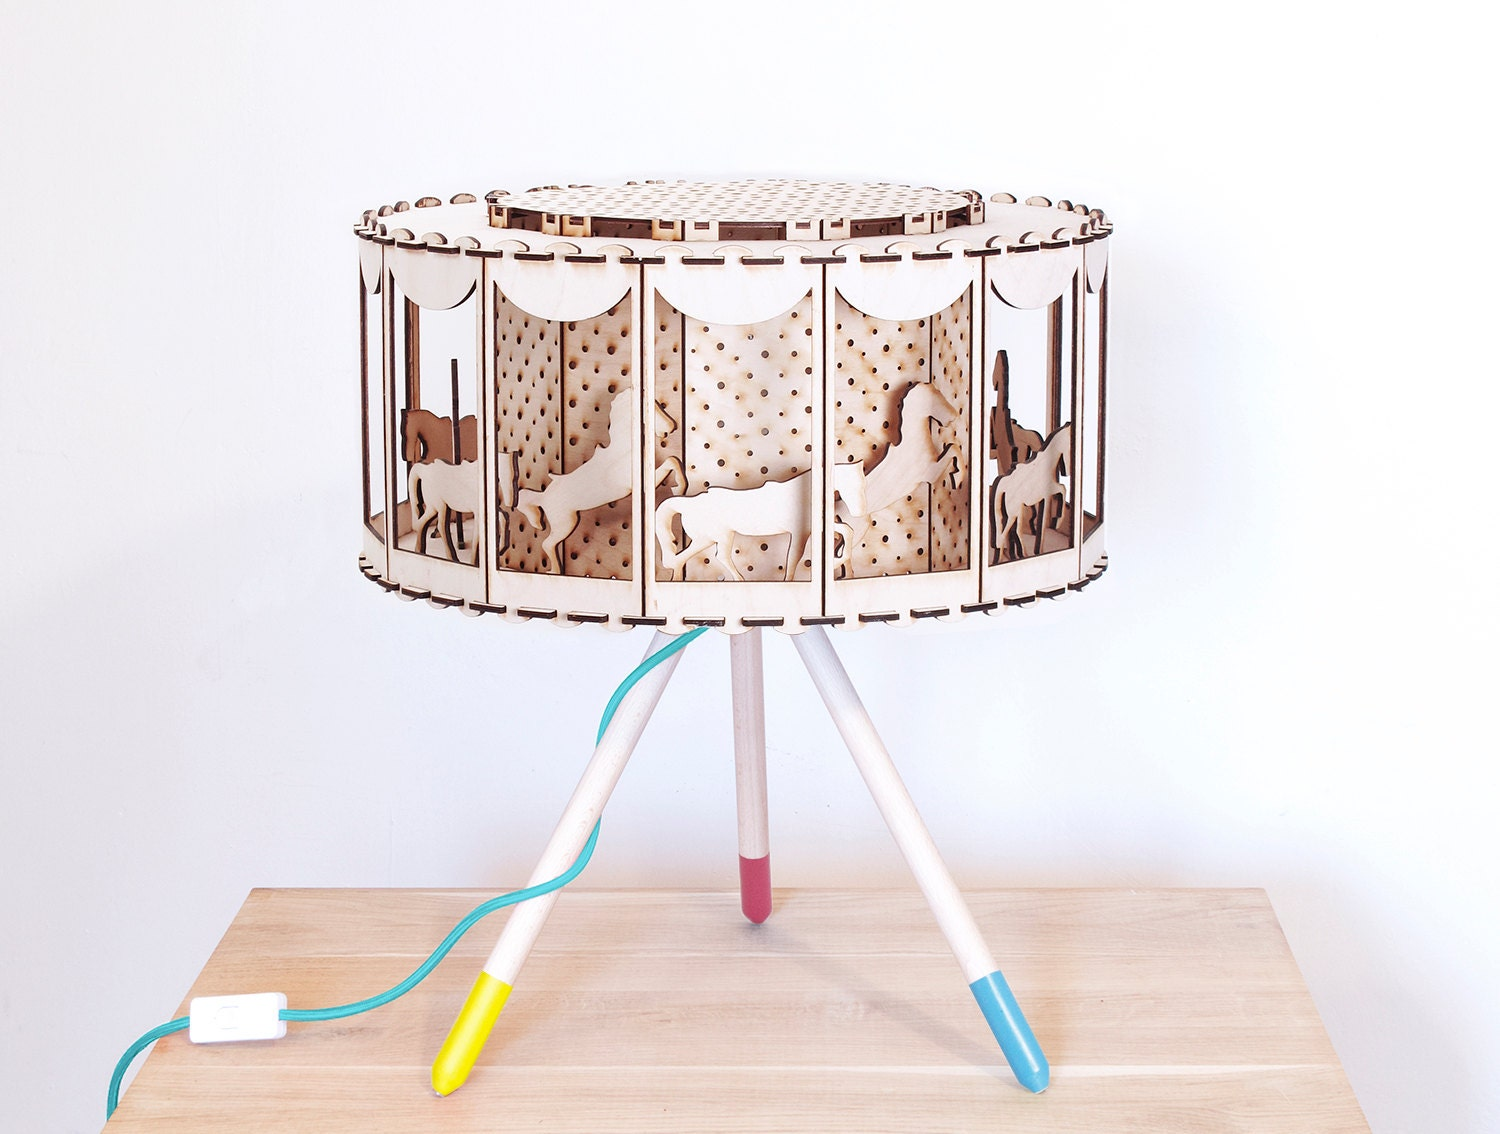 Carousel lampshade carousel horse wood lamp nursery decor for How To Make A Spinning Lamp  lp00lyp